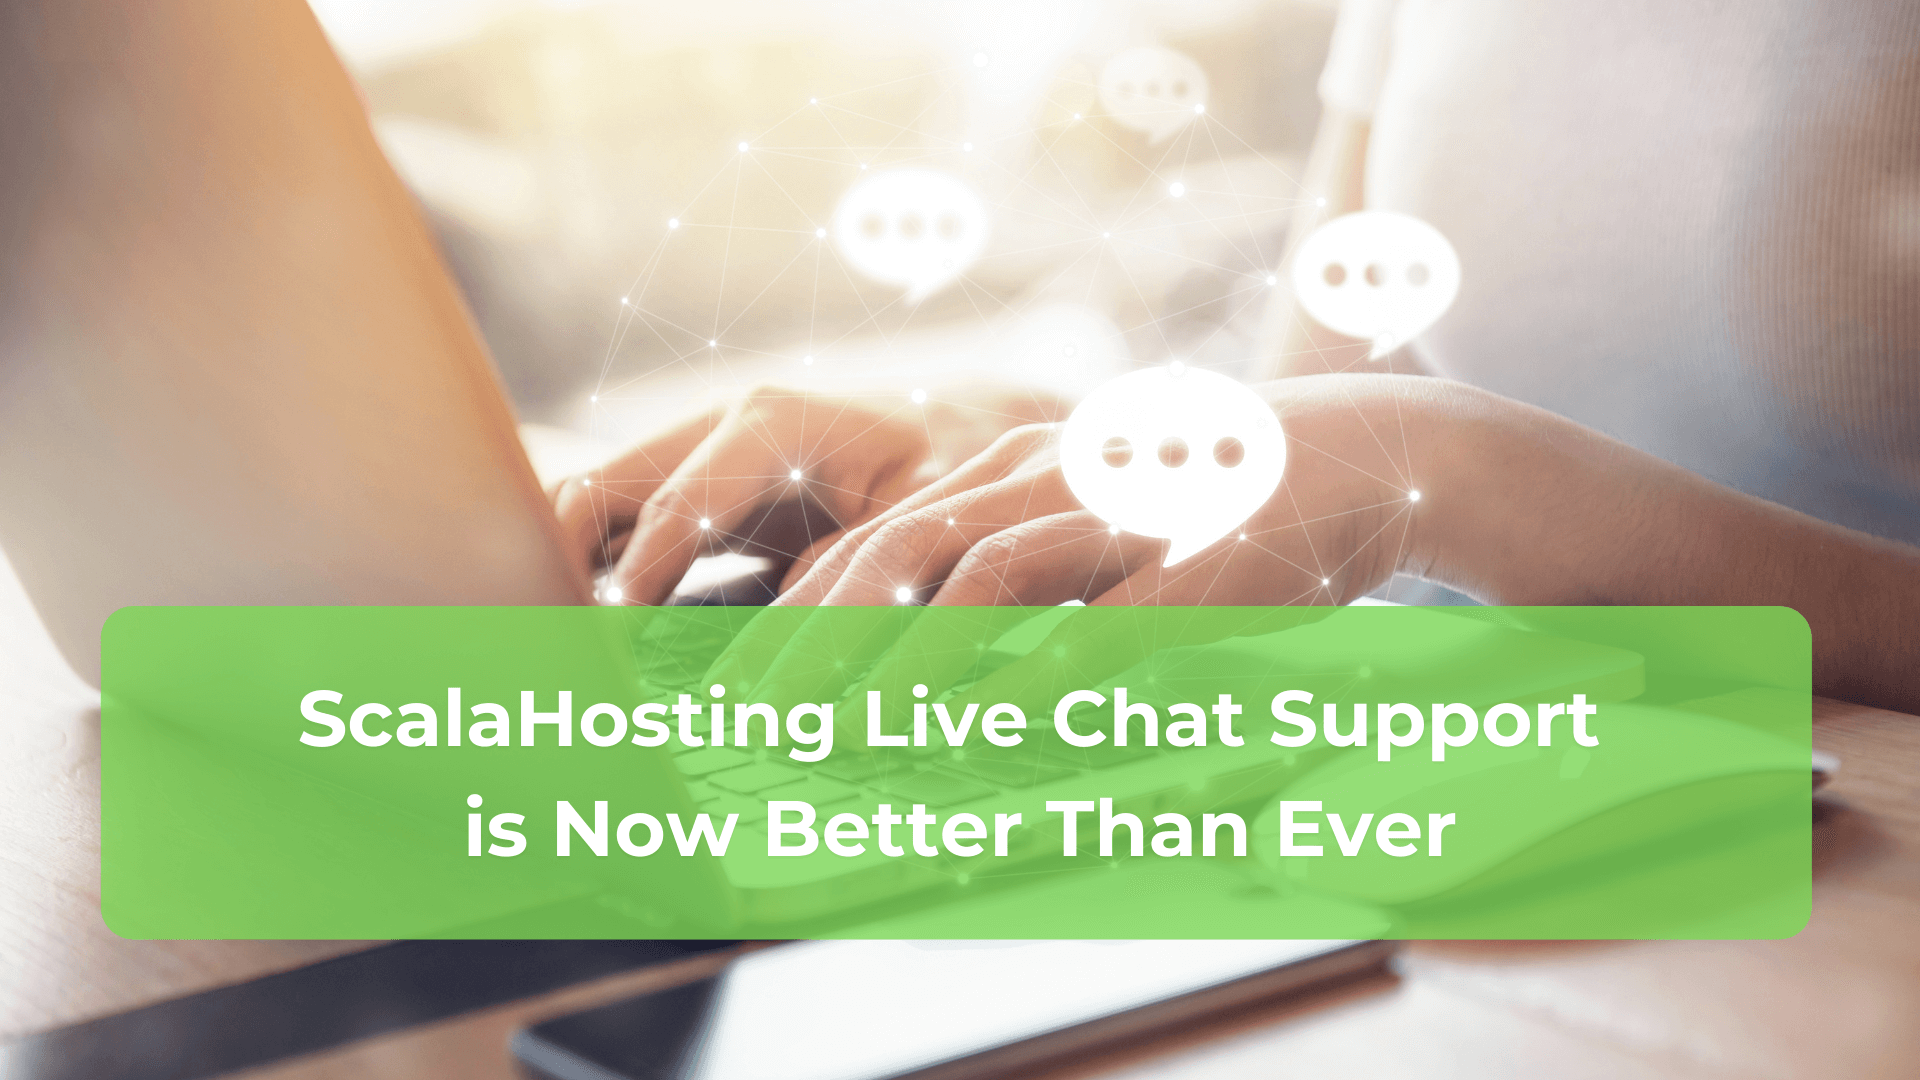 ScalaHosting Live Chat Support is Now Better Than Ever